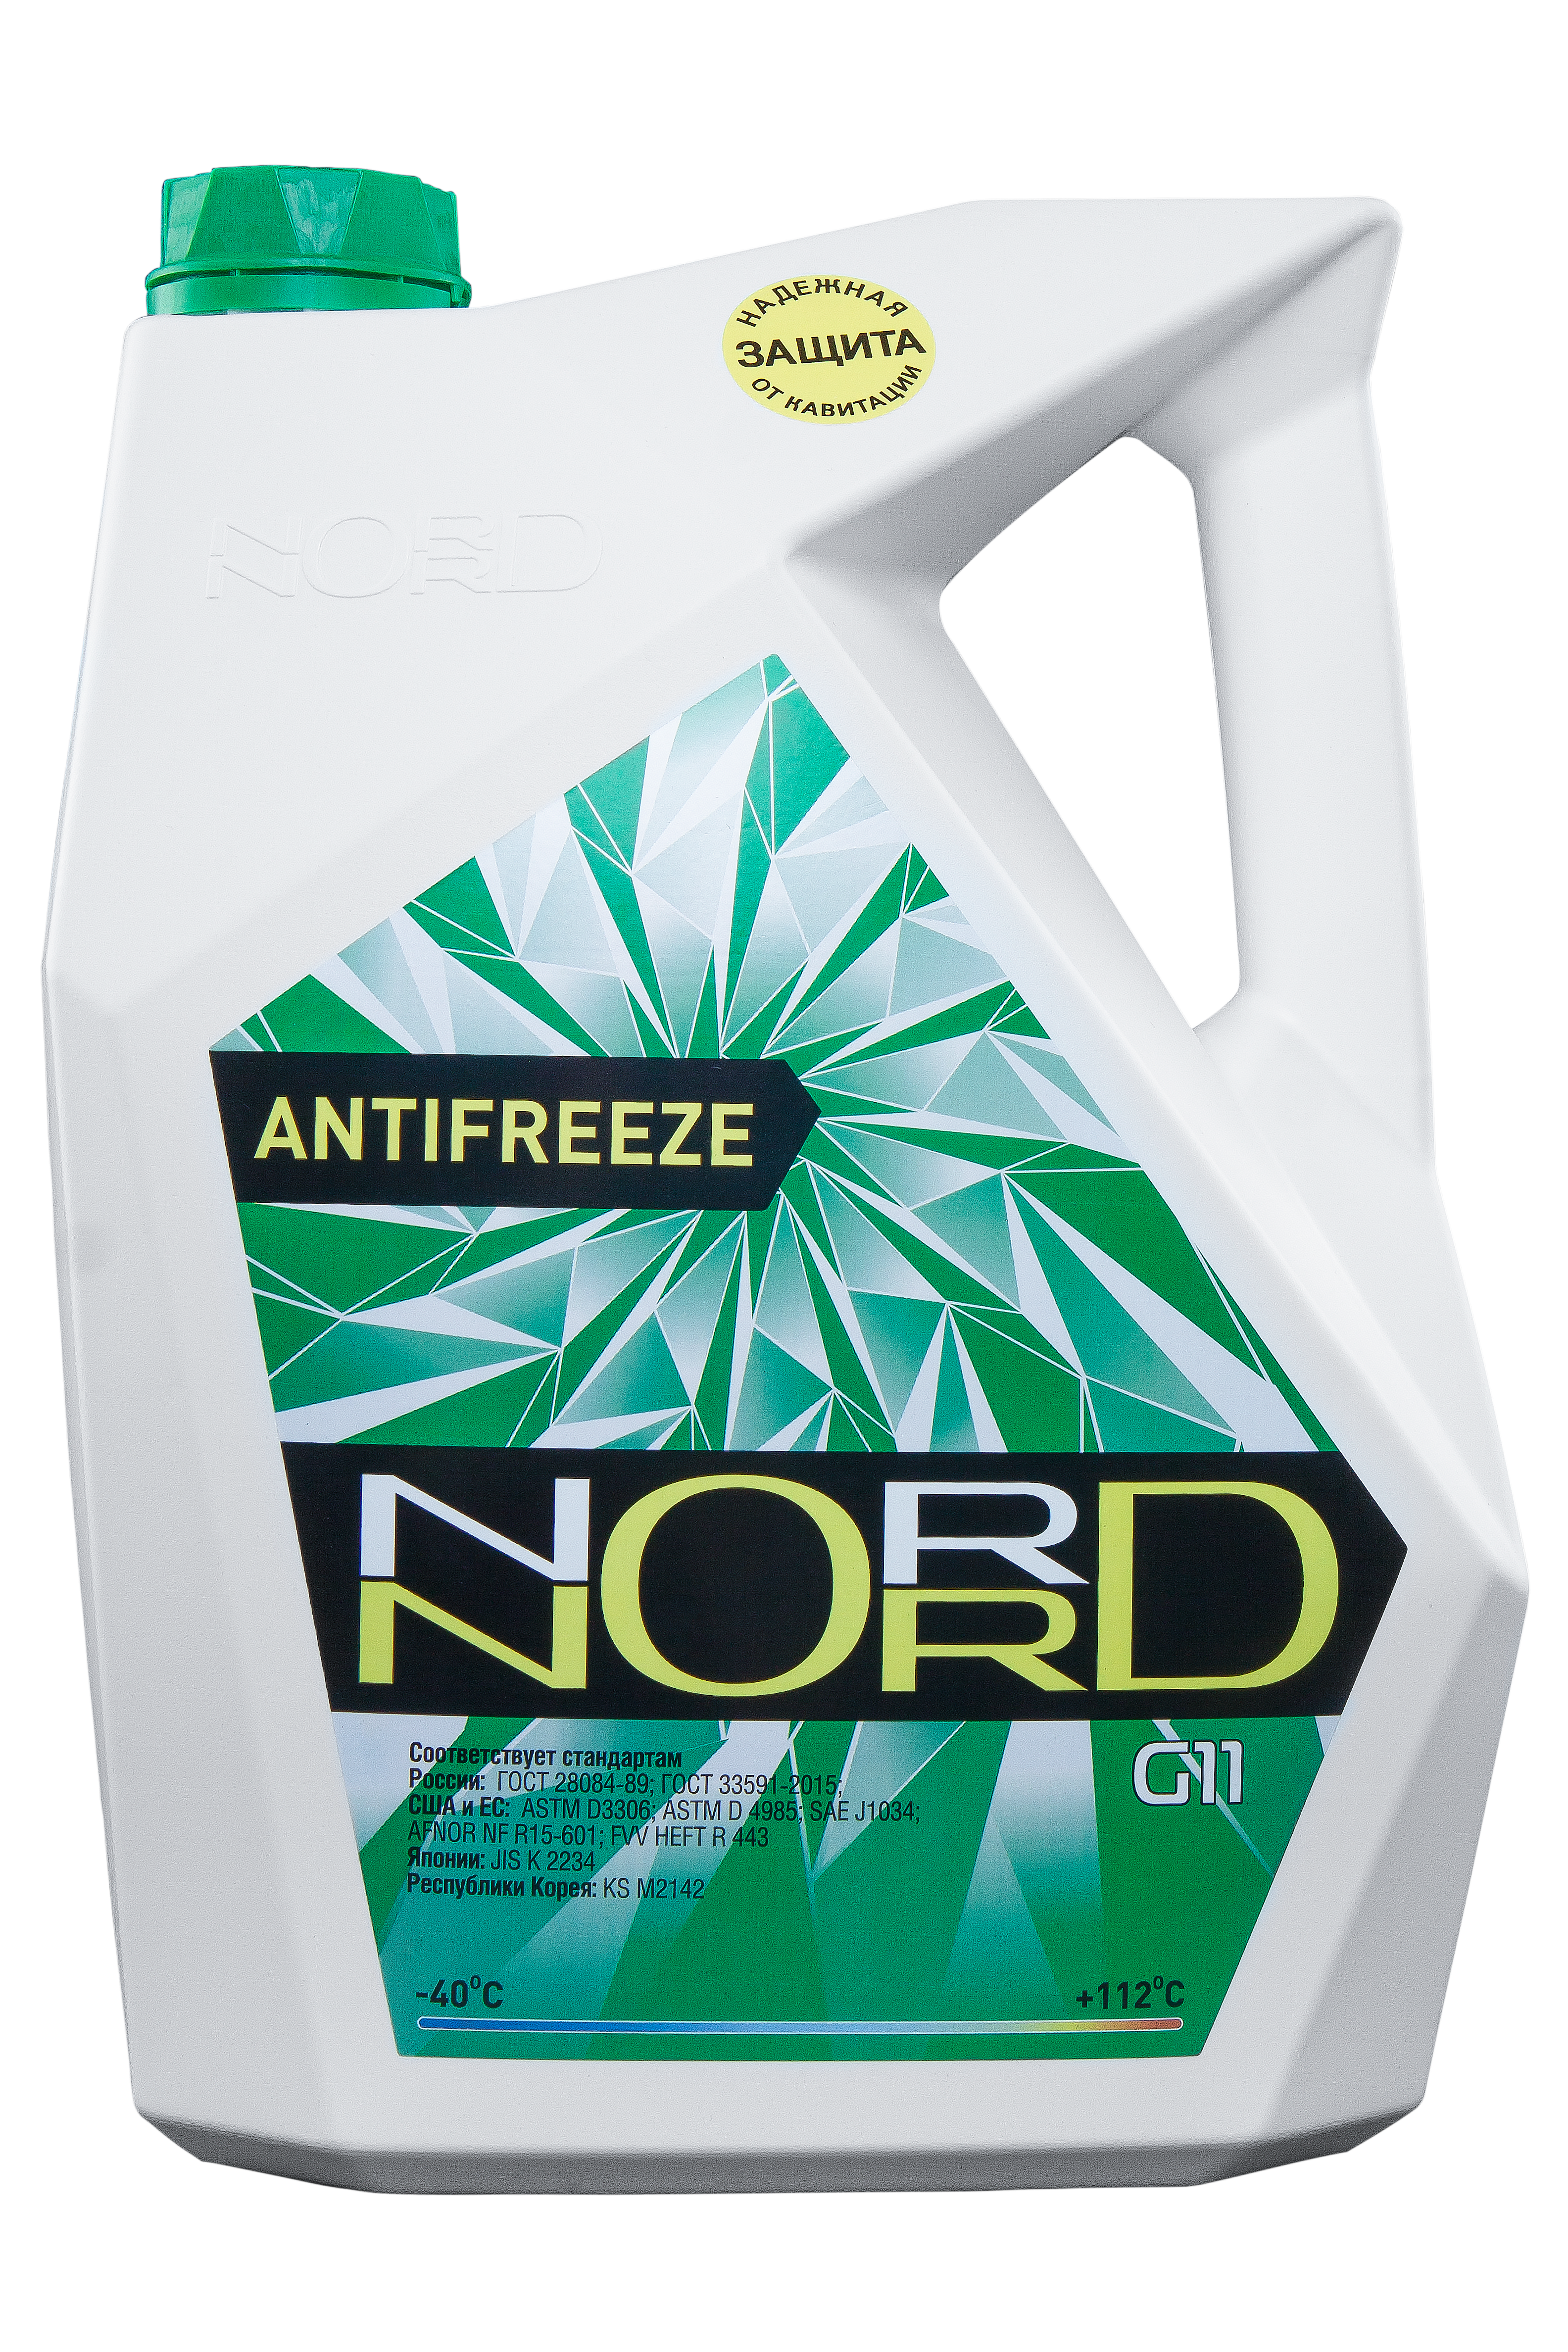 nord NG20492 Антифриз NORD High Quality Antifreeze готовый -40C зеленый 10 кг